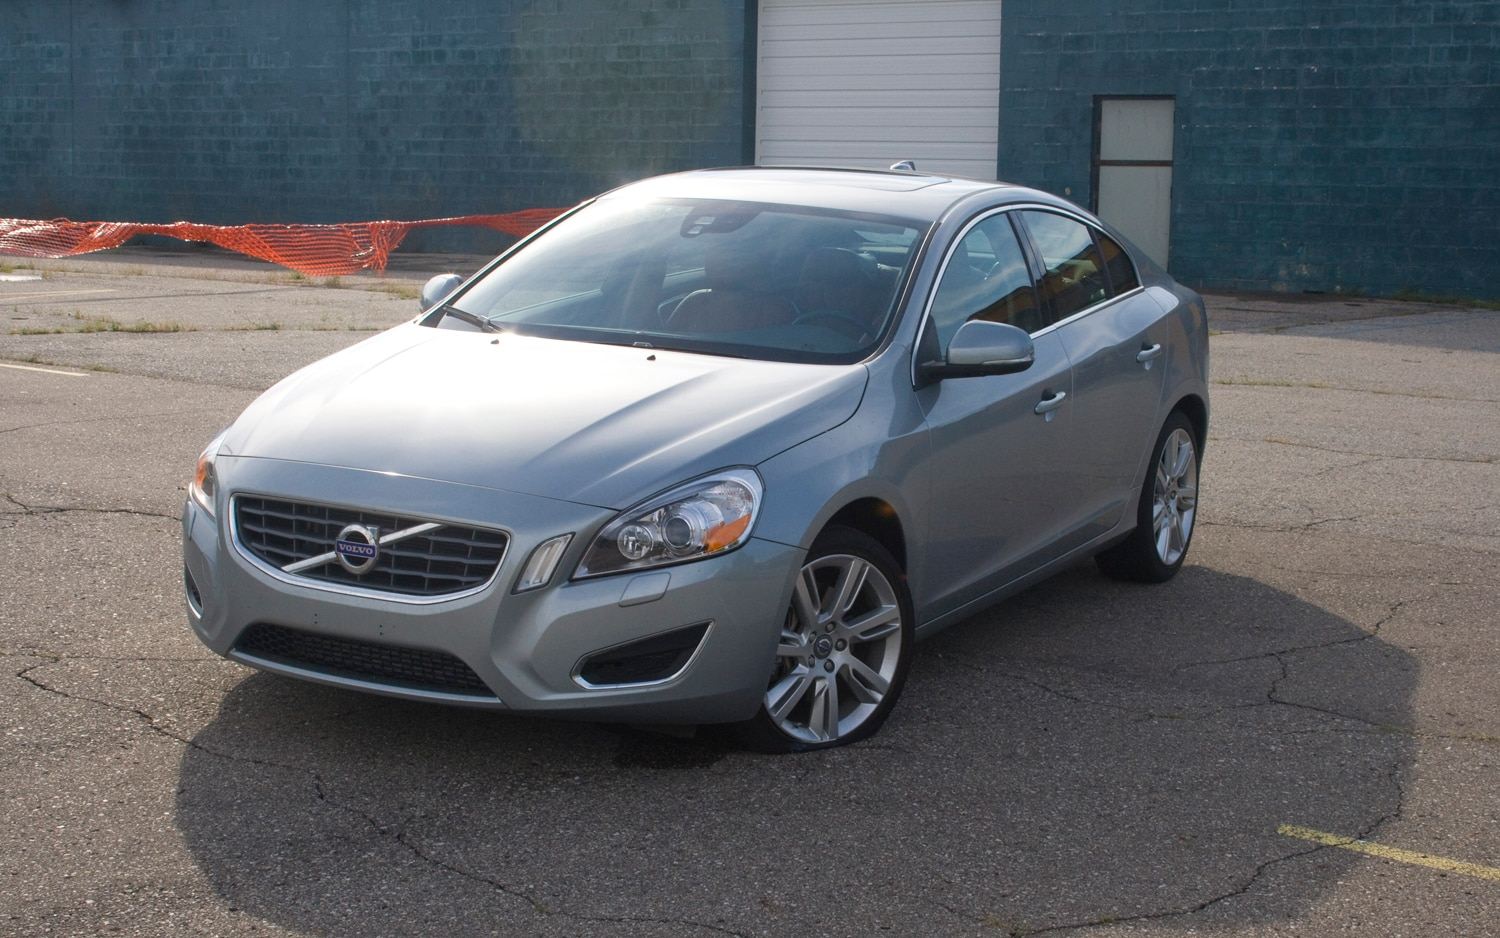 2012 Volvo S60 T6 AWD Front Left View1